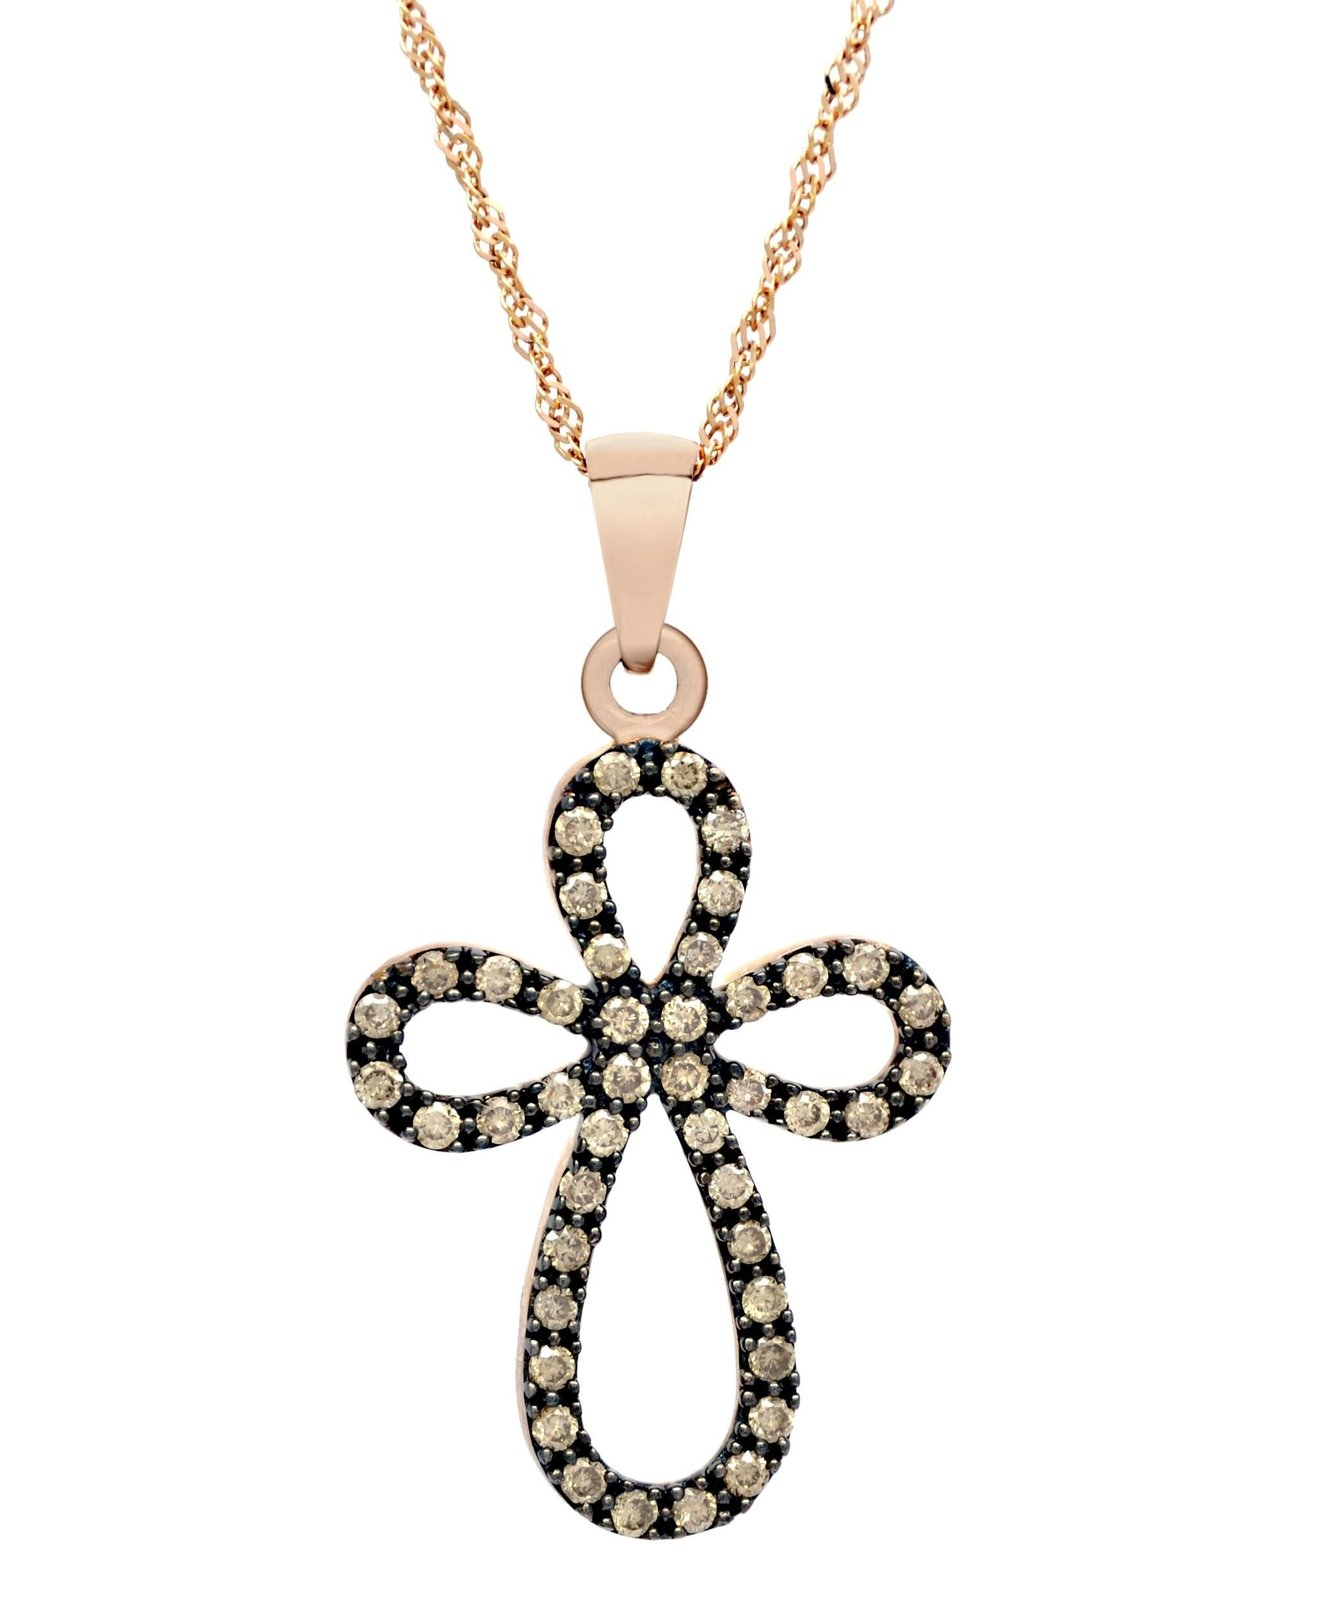 10 K Rose Gold 0.40 Ct Congac Diamond Cross Pendant with 10 K Rose Gold Chain